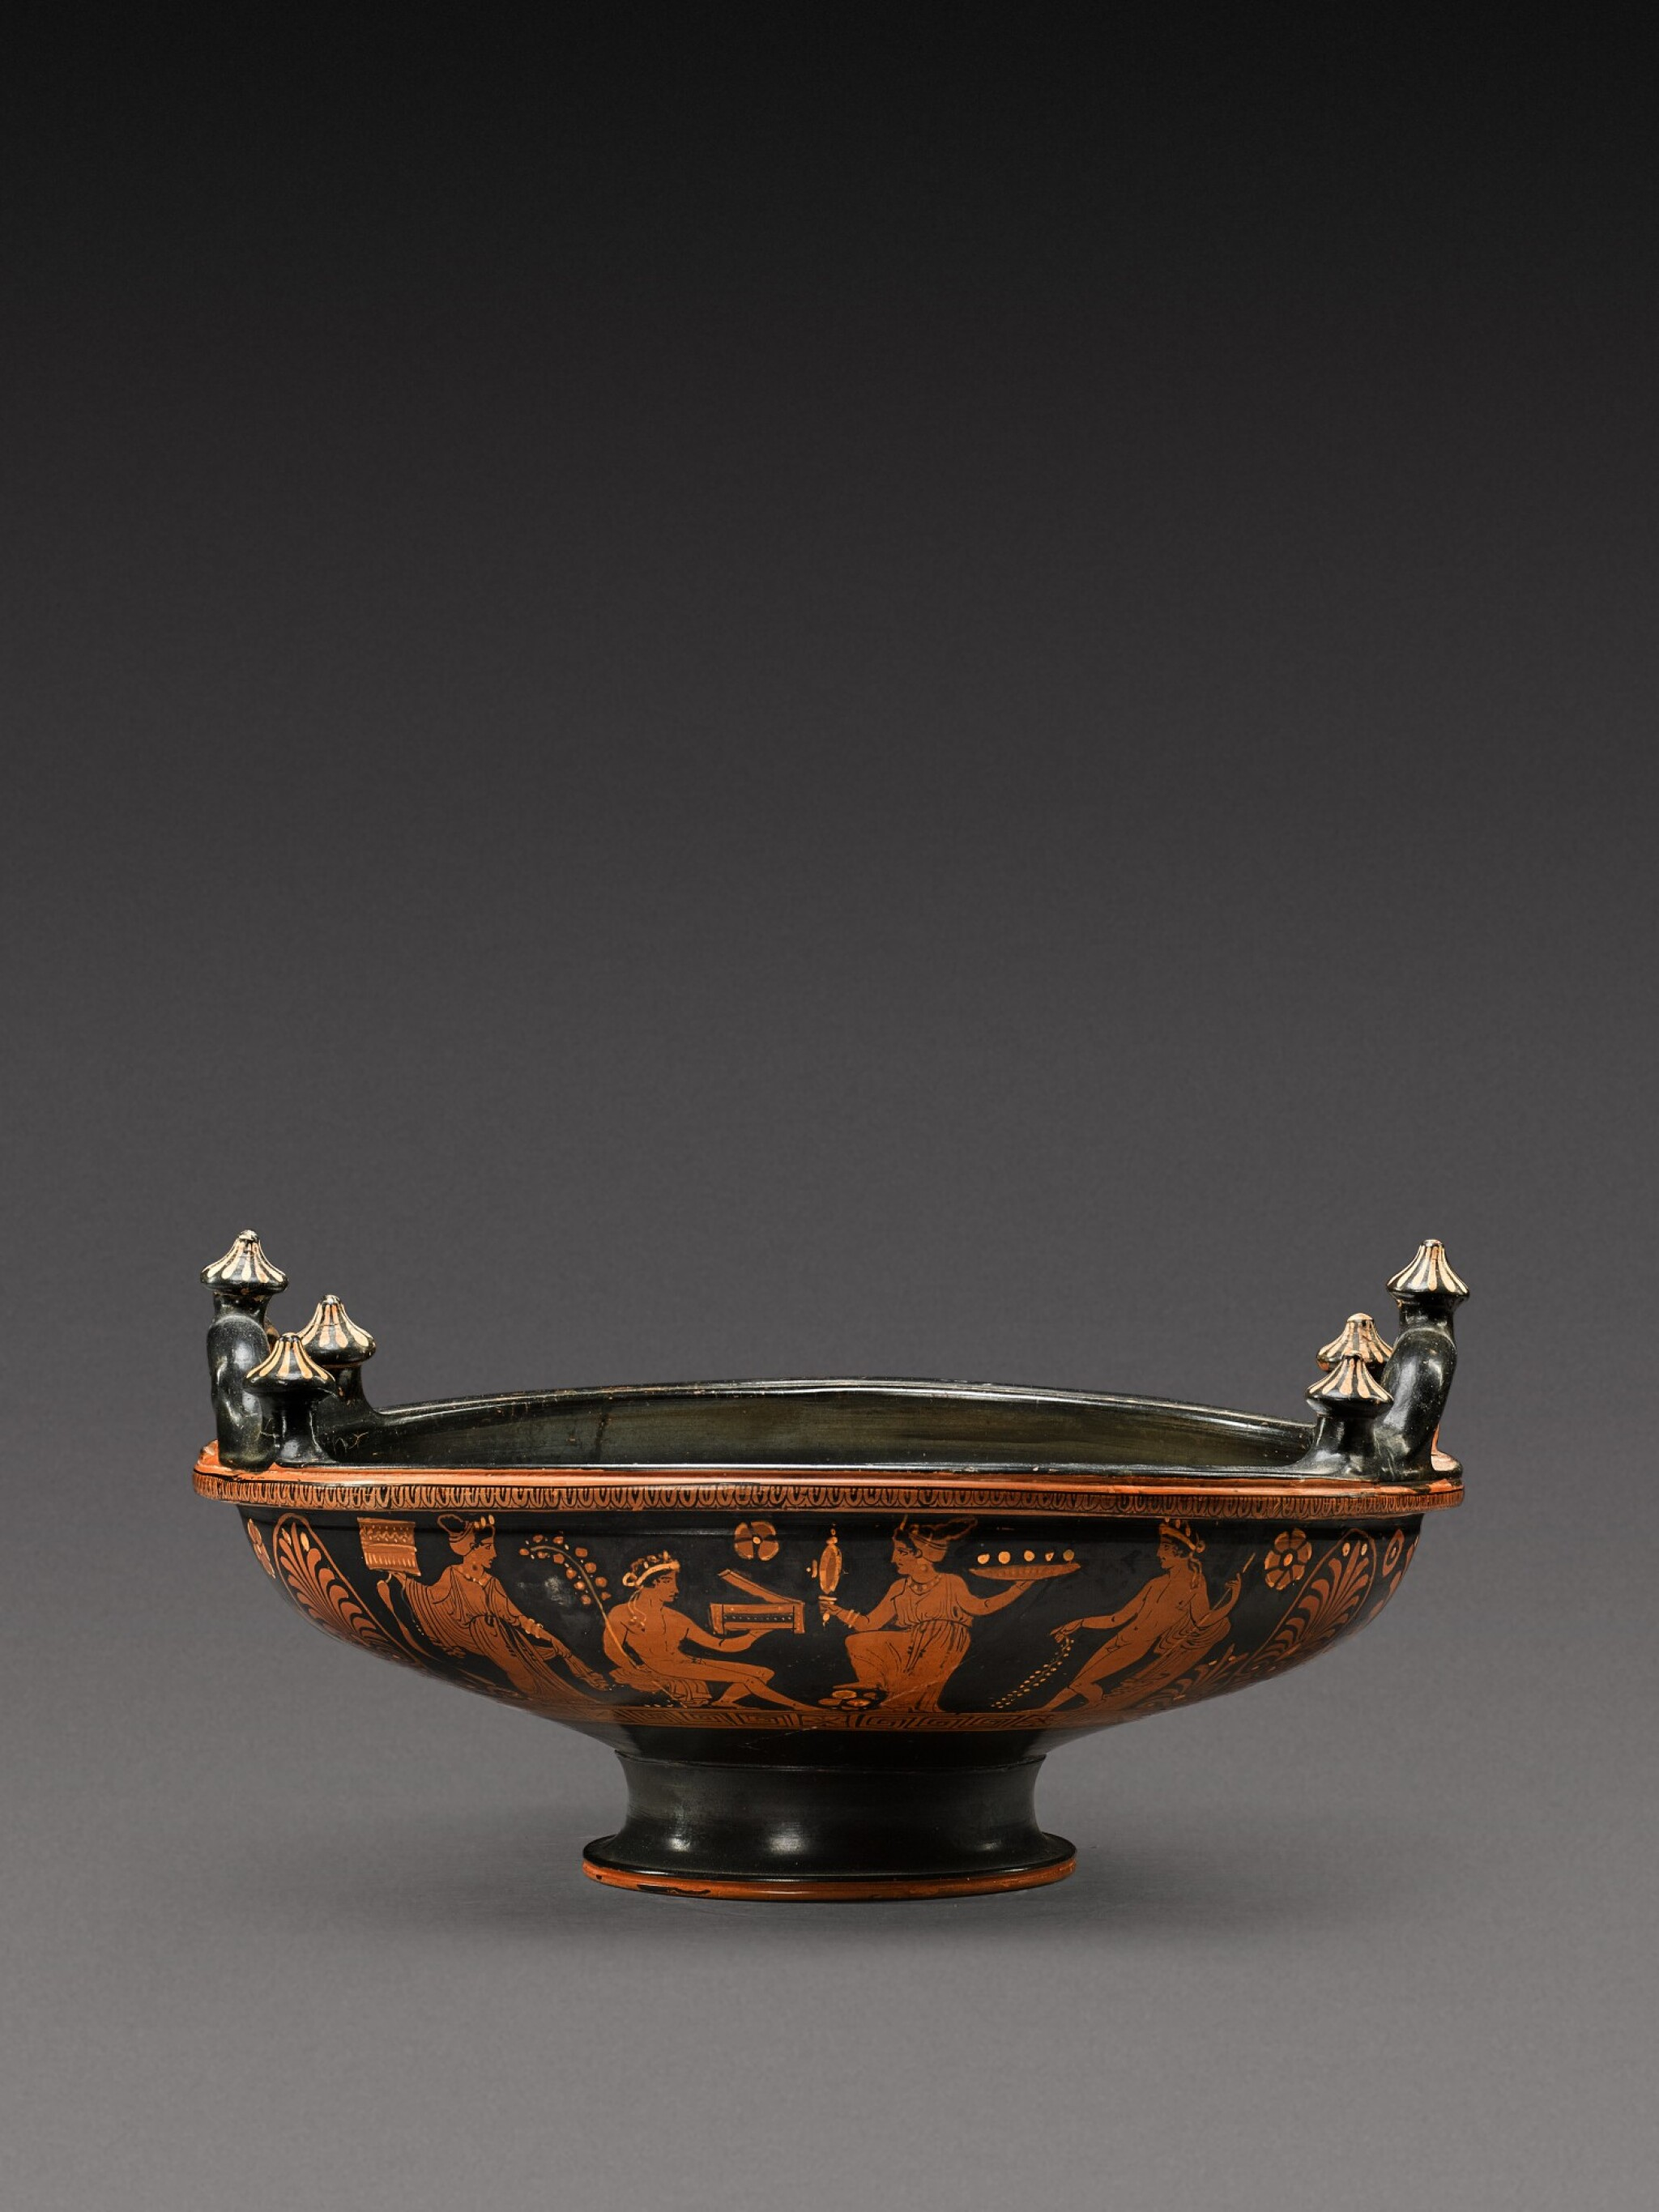 View full screen - View 1 of Lot 20. An Apulian Red-figured Patera, attributed to the Iliupersis Painter, circa 350-330 B.C..